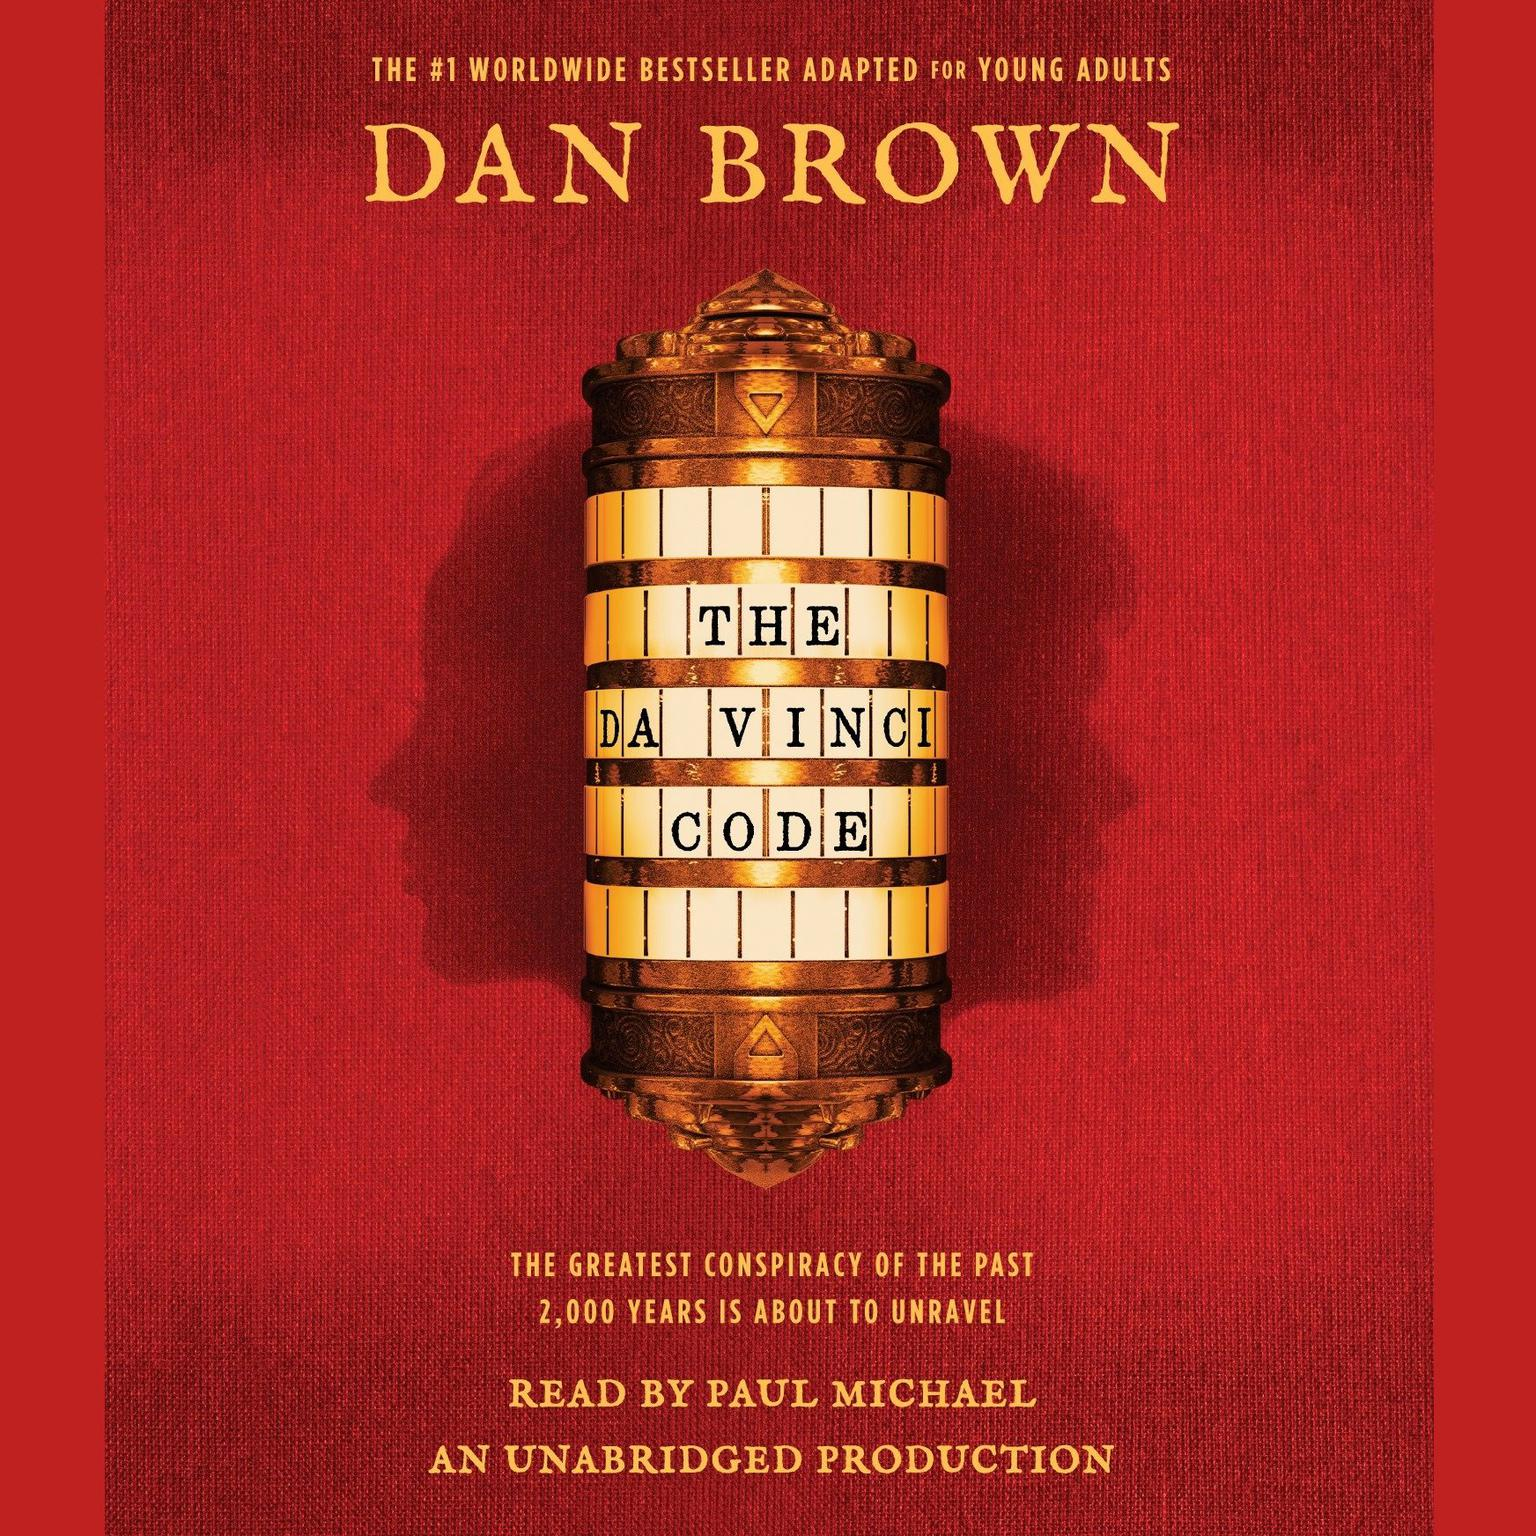 Download the da vinci code the young adult adaptation audiobook extended audio sample the da vinci code the young adult adaptation audiobook by dan brown buycottarizona